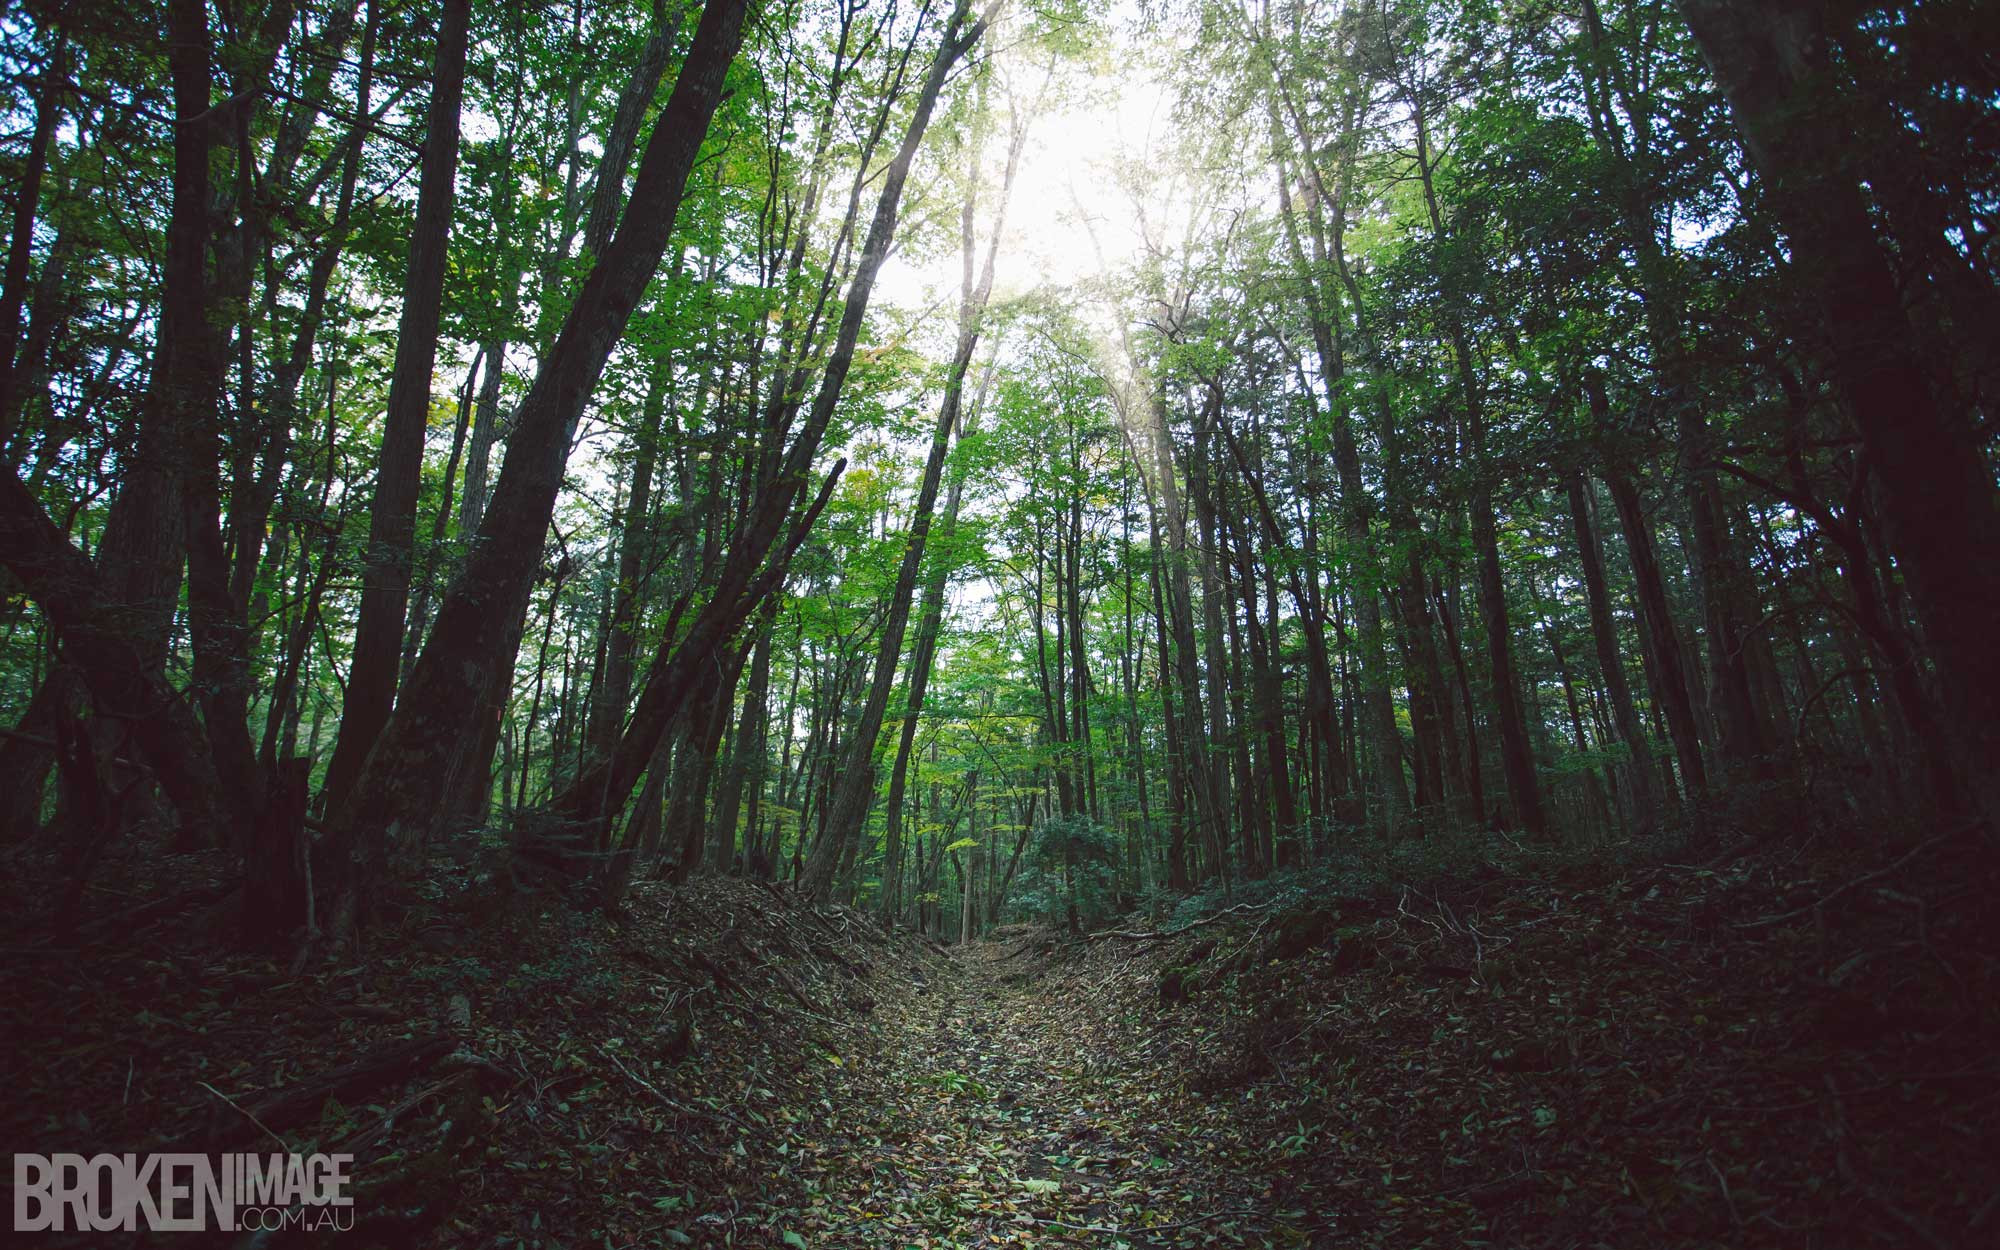 Visiting The Aokigahara Forest